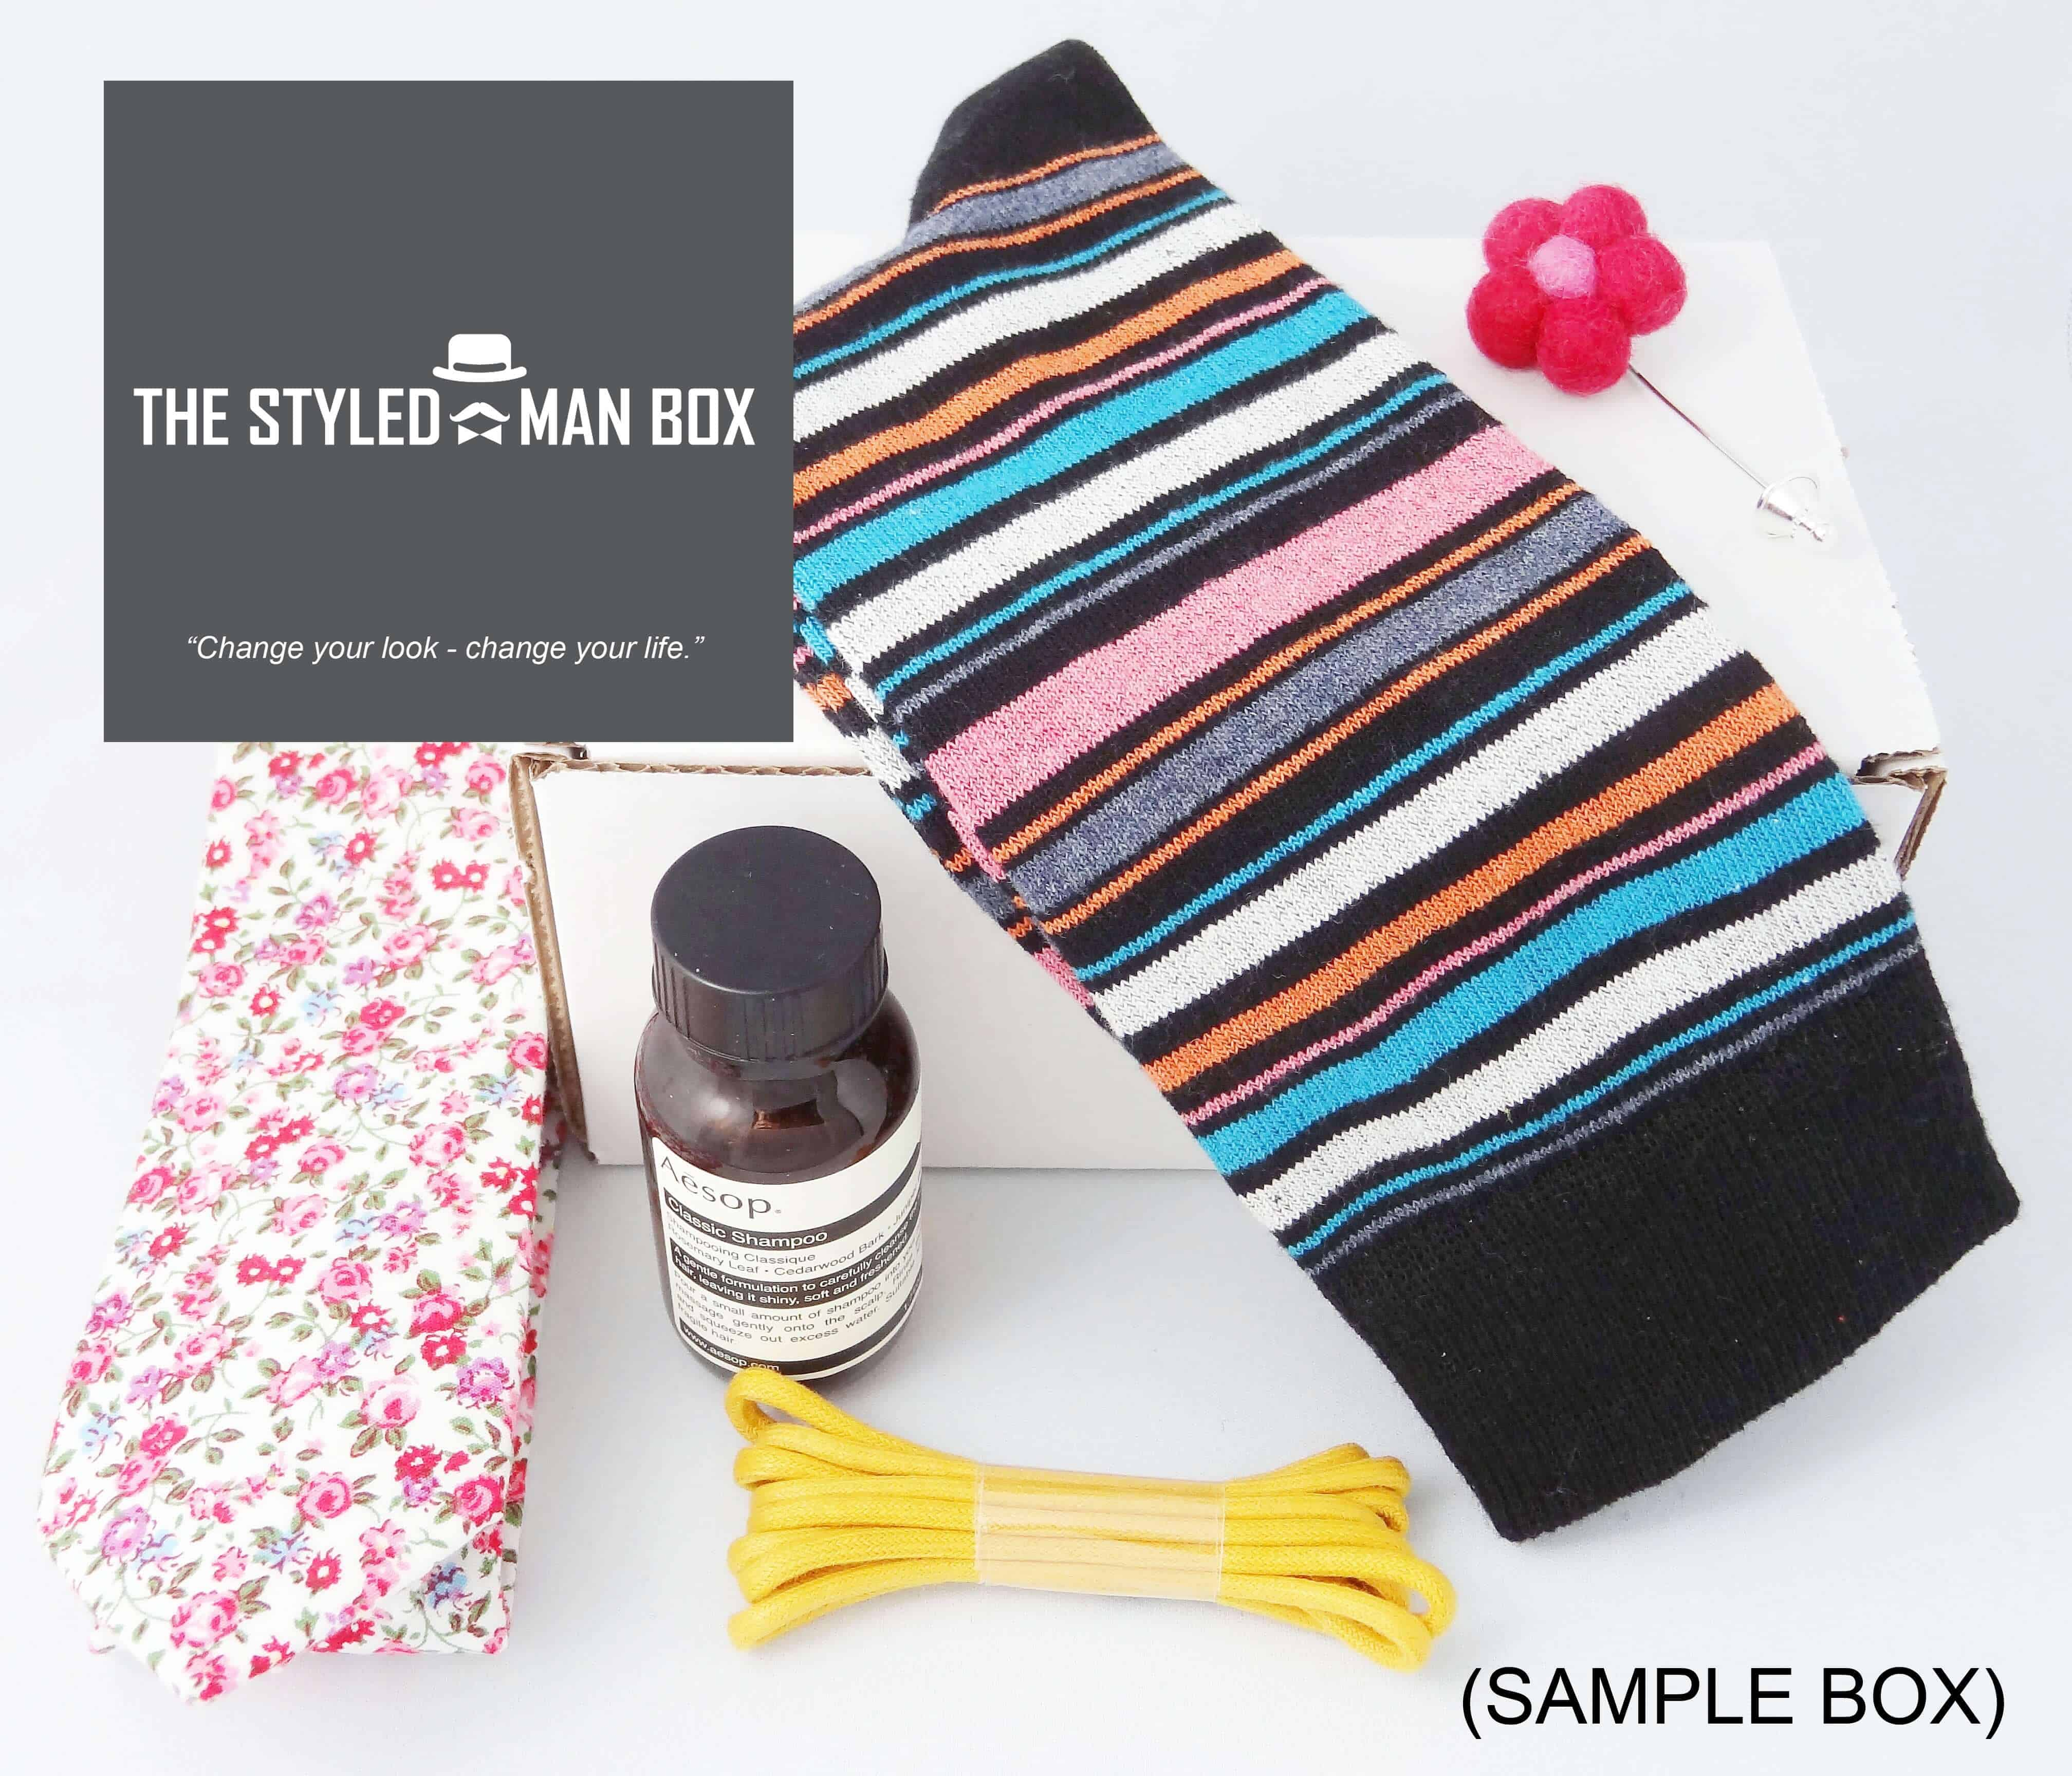 The Styled Man Box